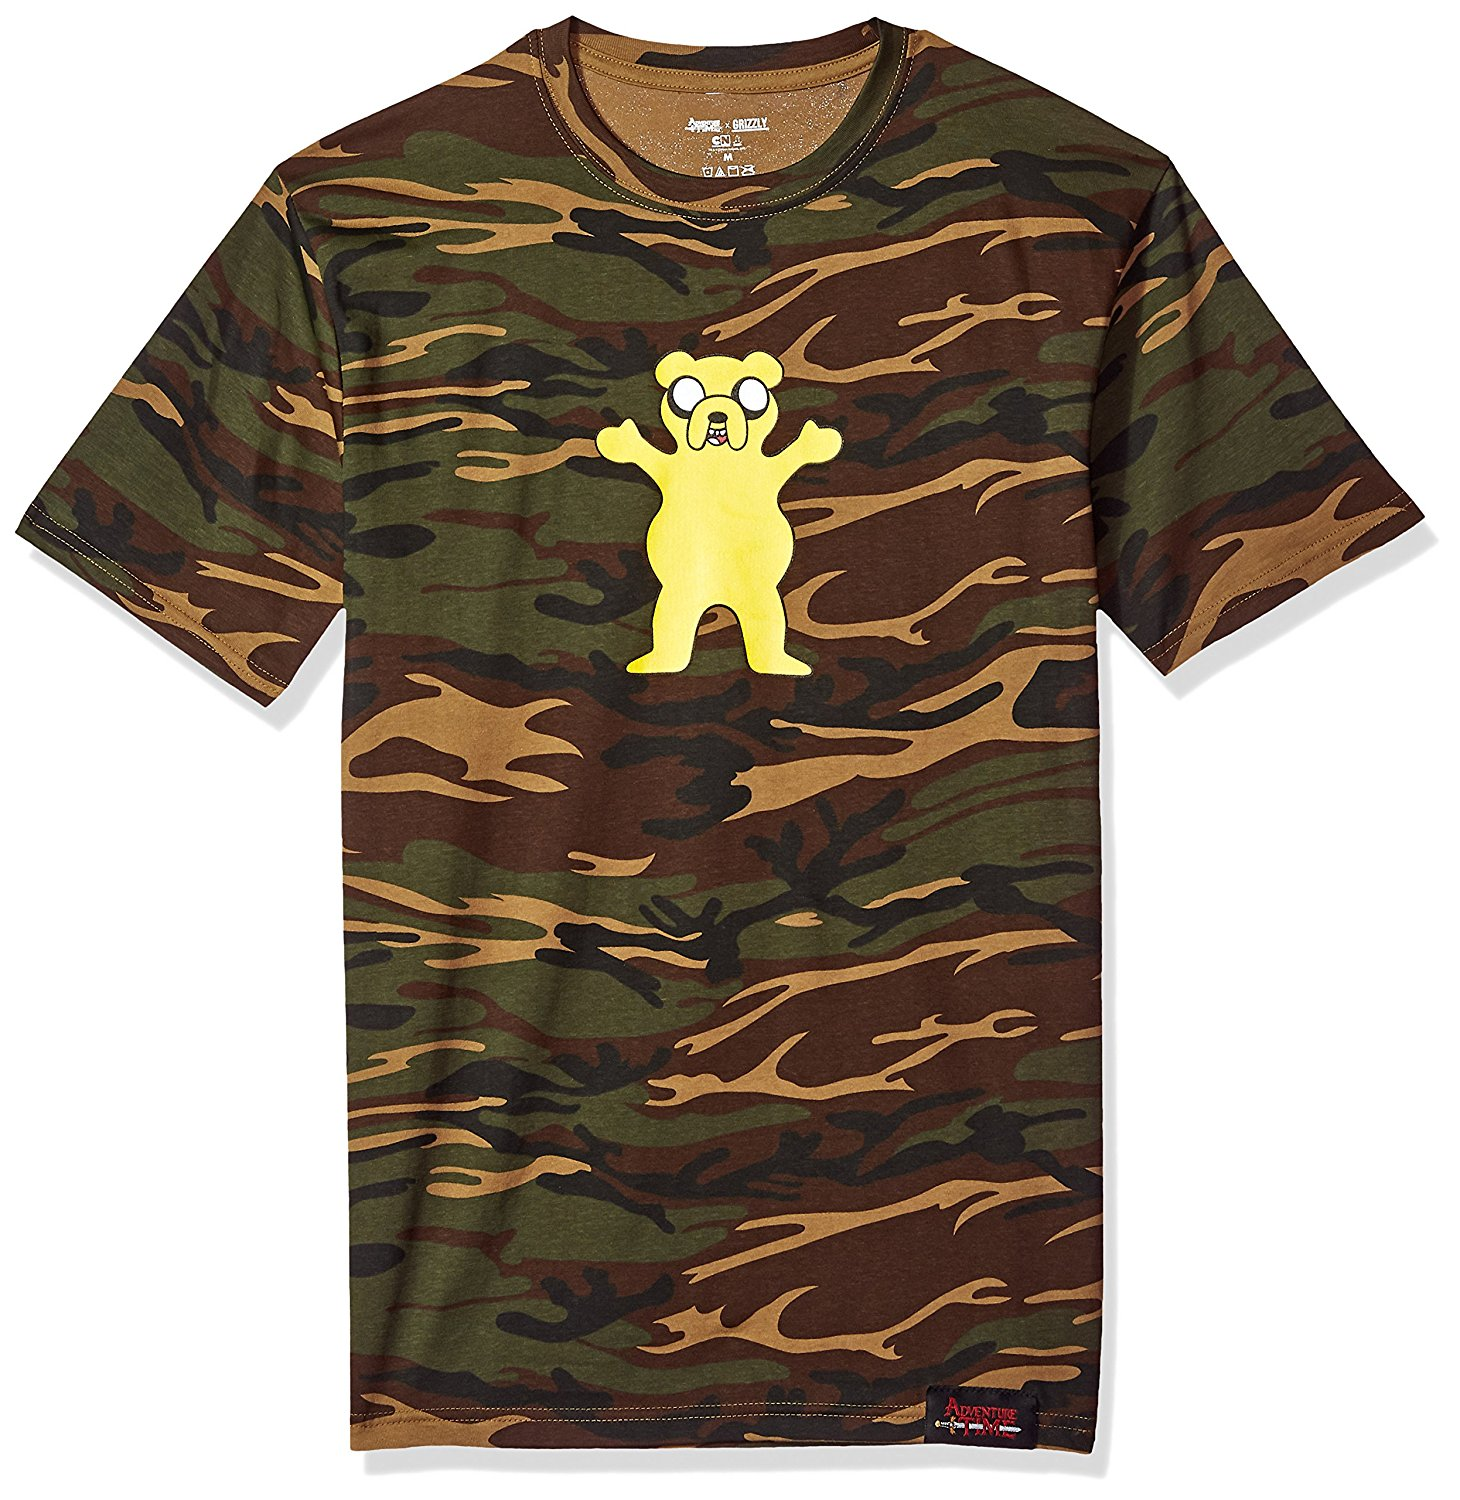 b481d435 Get Quotations · Grizzly Griptape x Adventure Time Homies Help Homies Mens T -Shirt in Camo